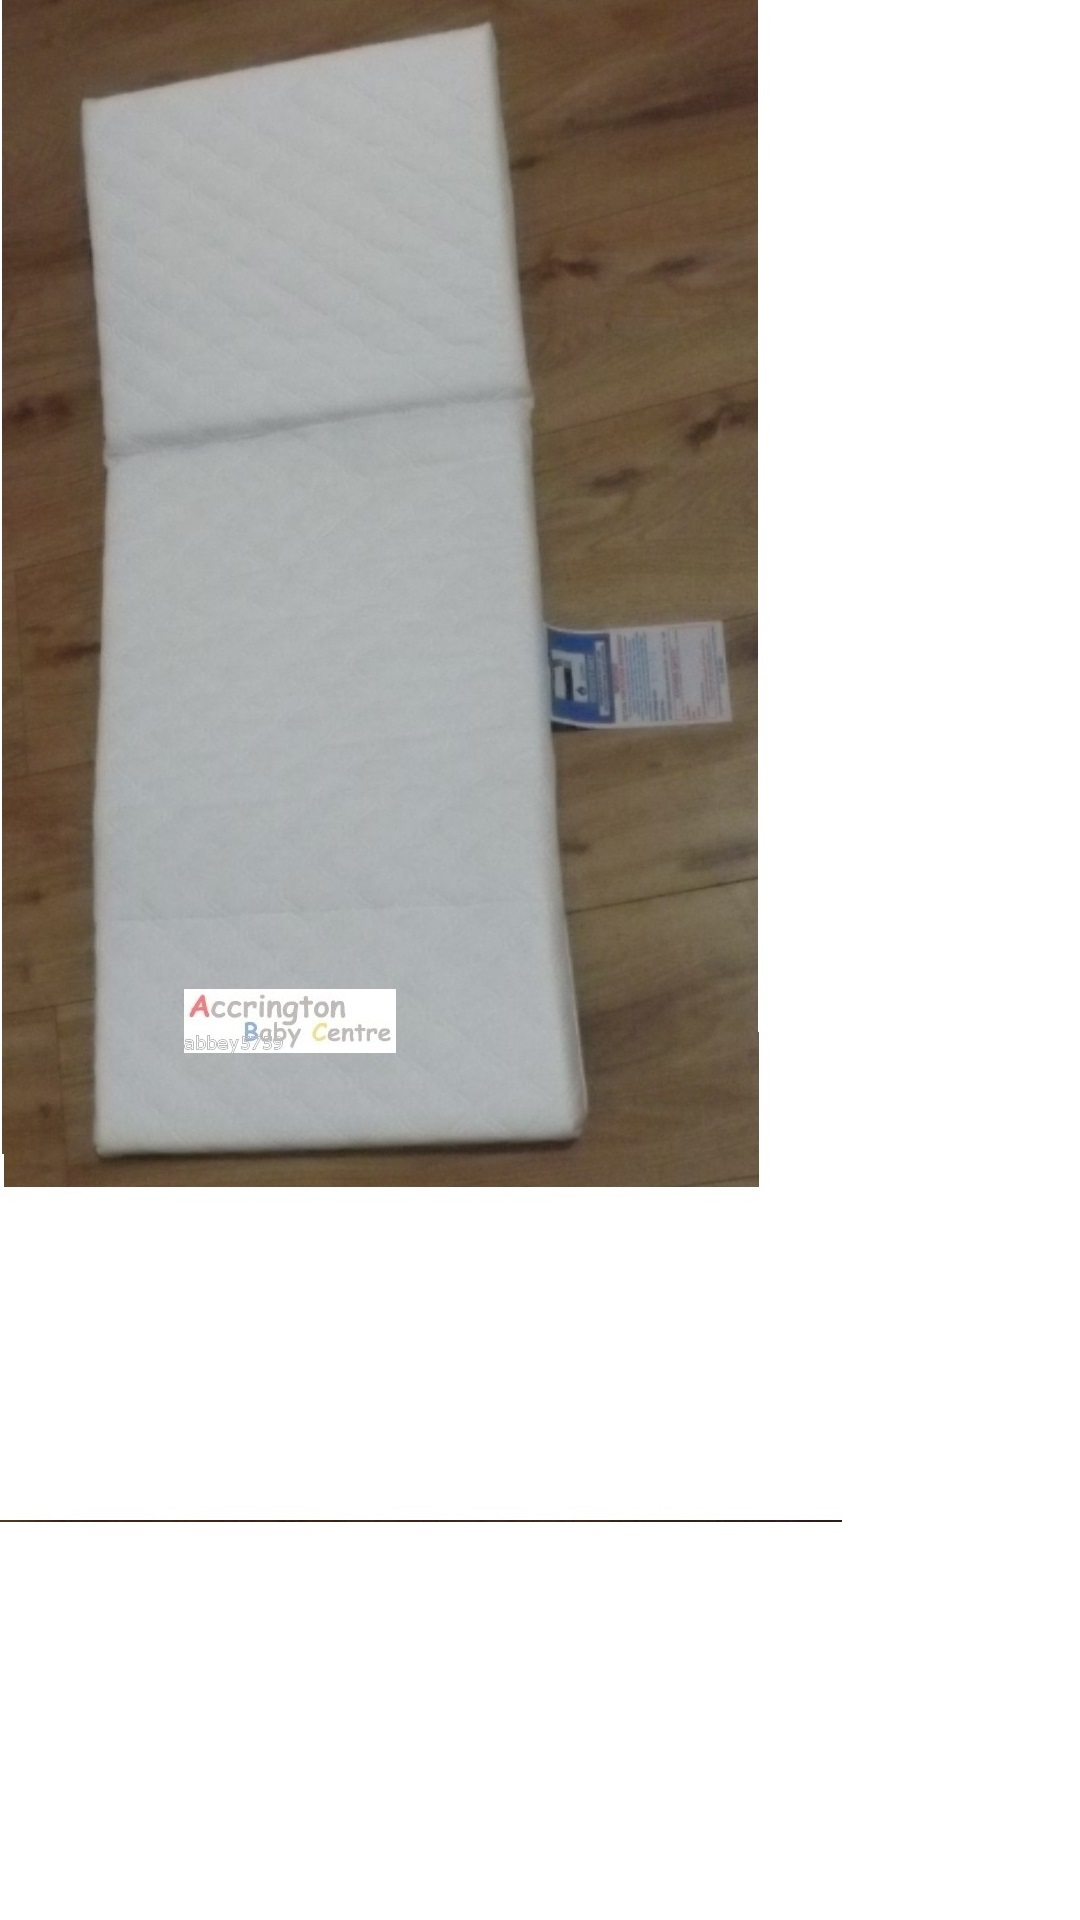 NEW SAFETY MATTRESS 85 x 36 cm 4 Balmoral Silver Cross